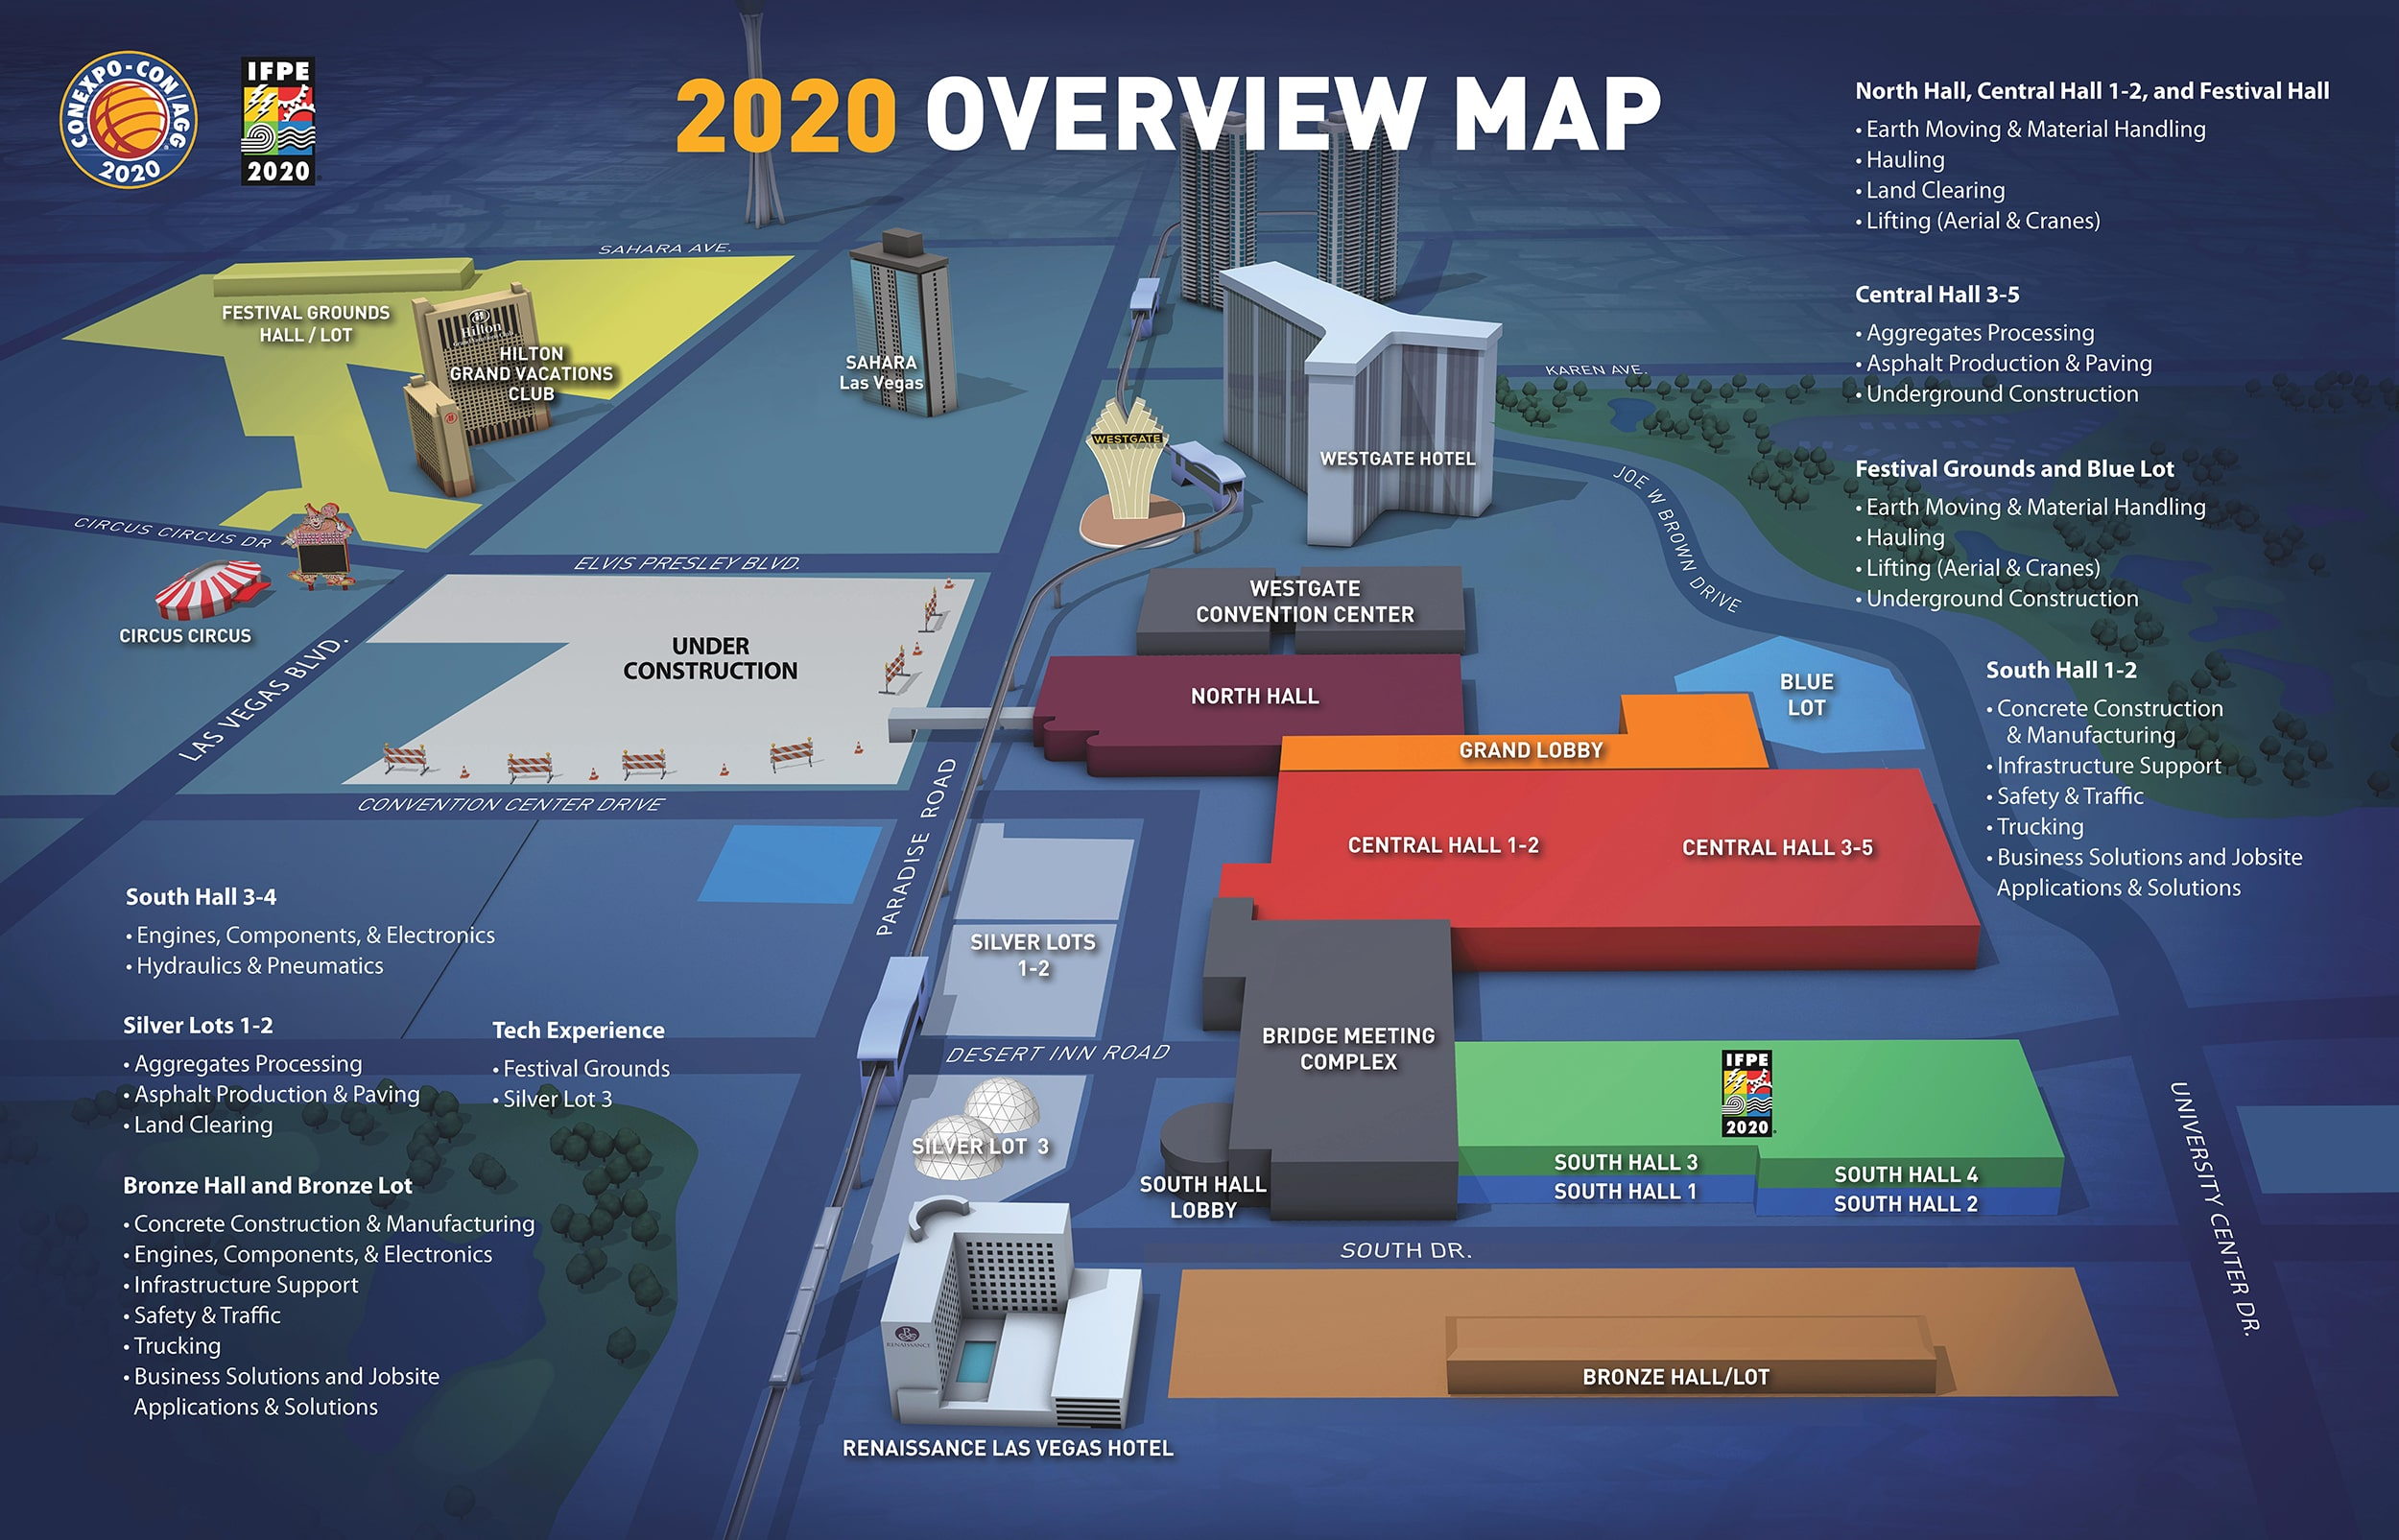 CONEXPO-CON/AGG 2020 Overview Map